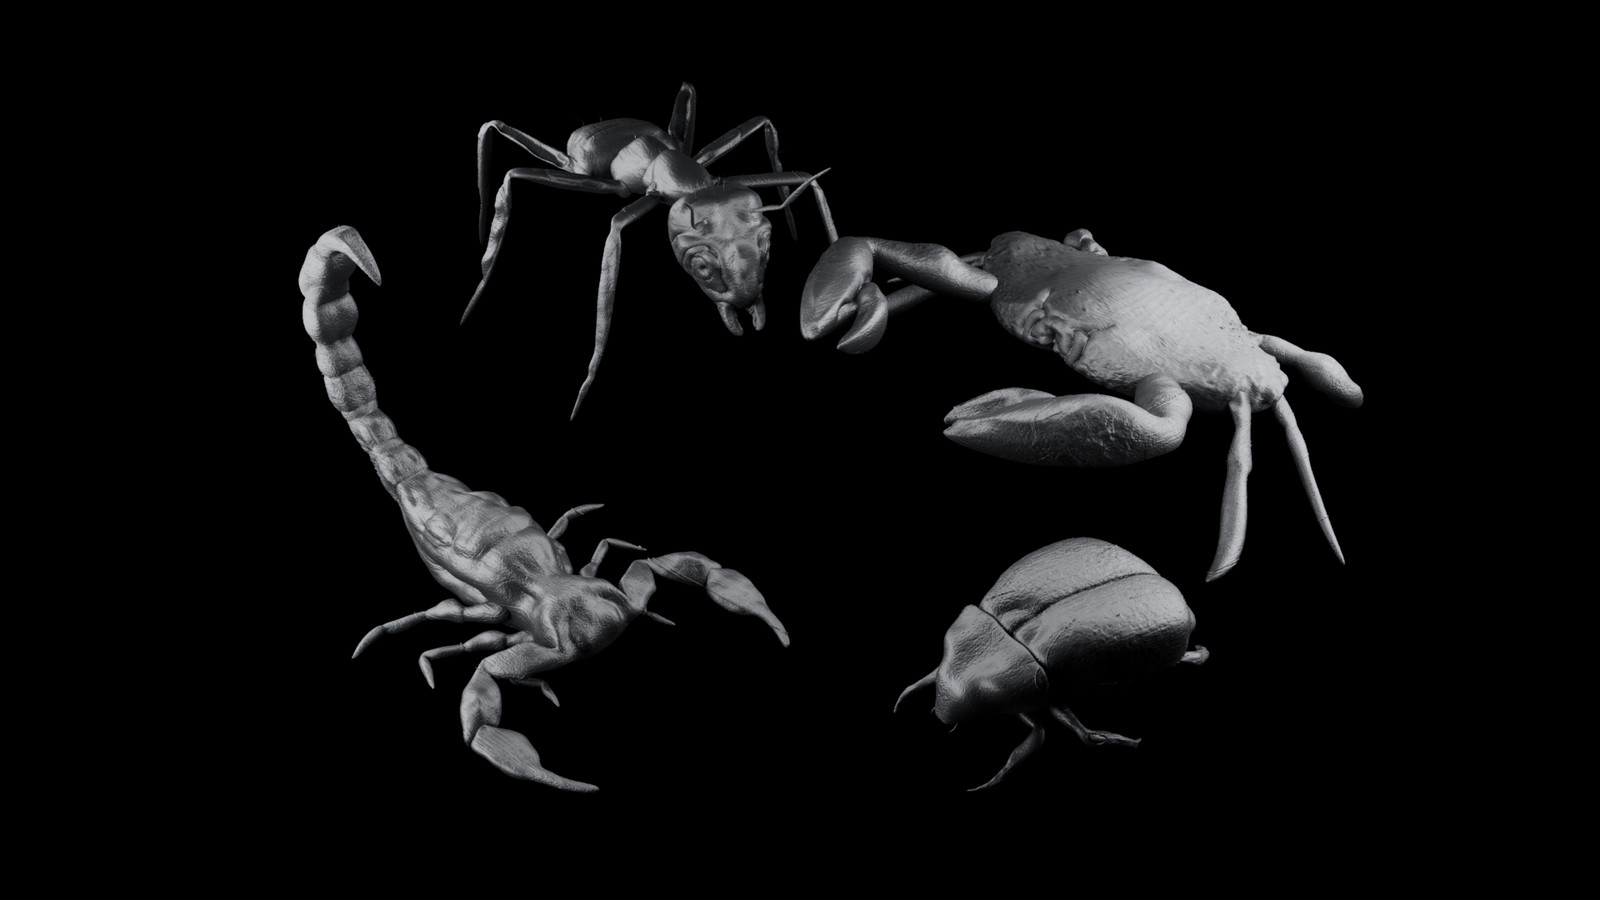 Ant, Scorpion, Crab and a random Insect... in ZBrush and Cinema 4D!